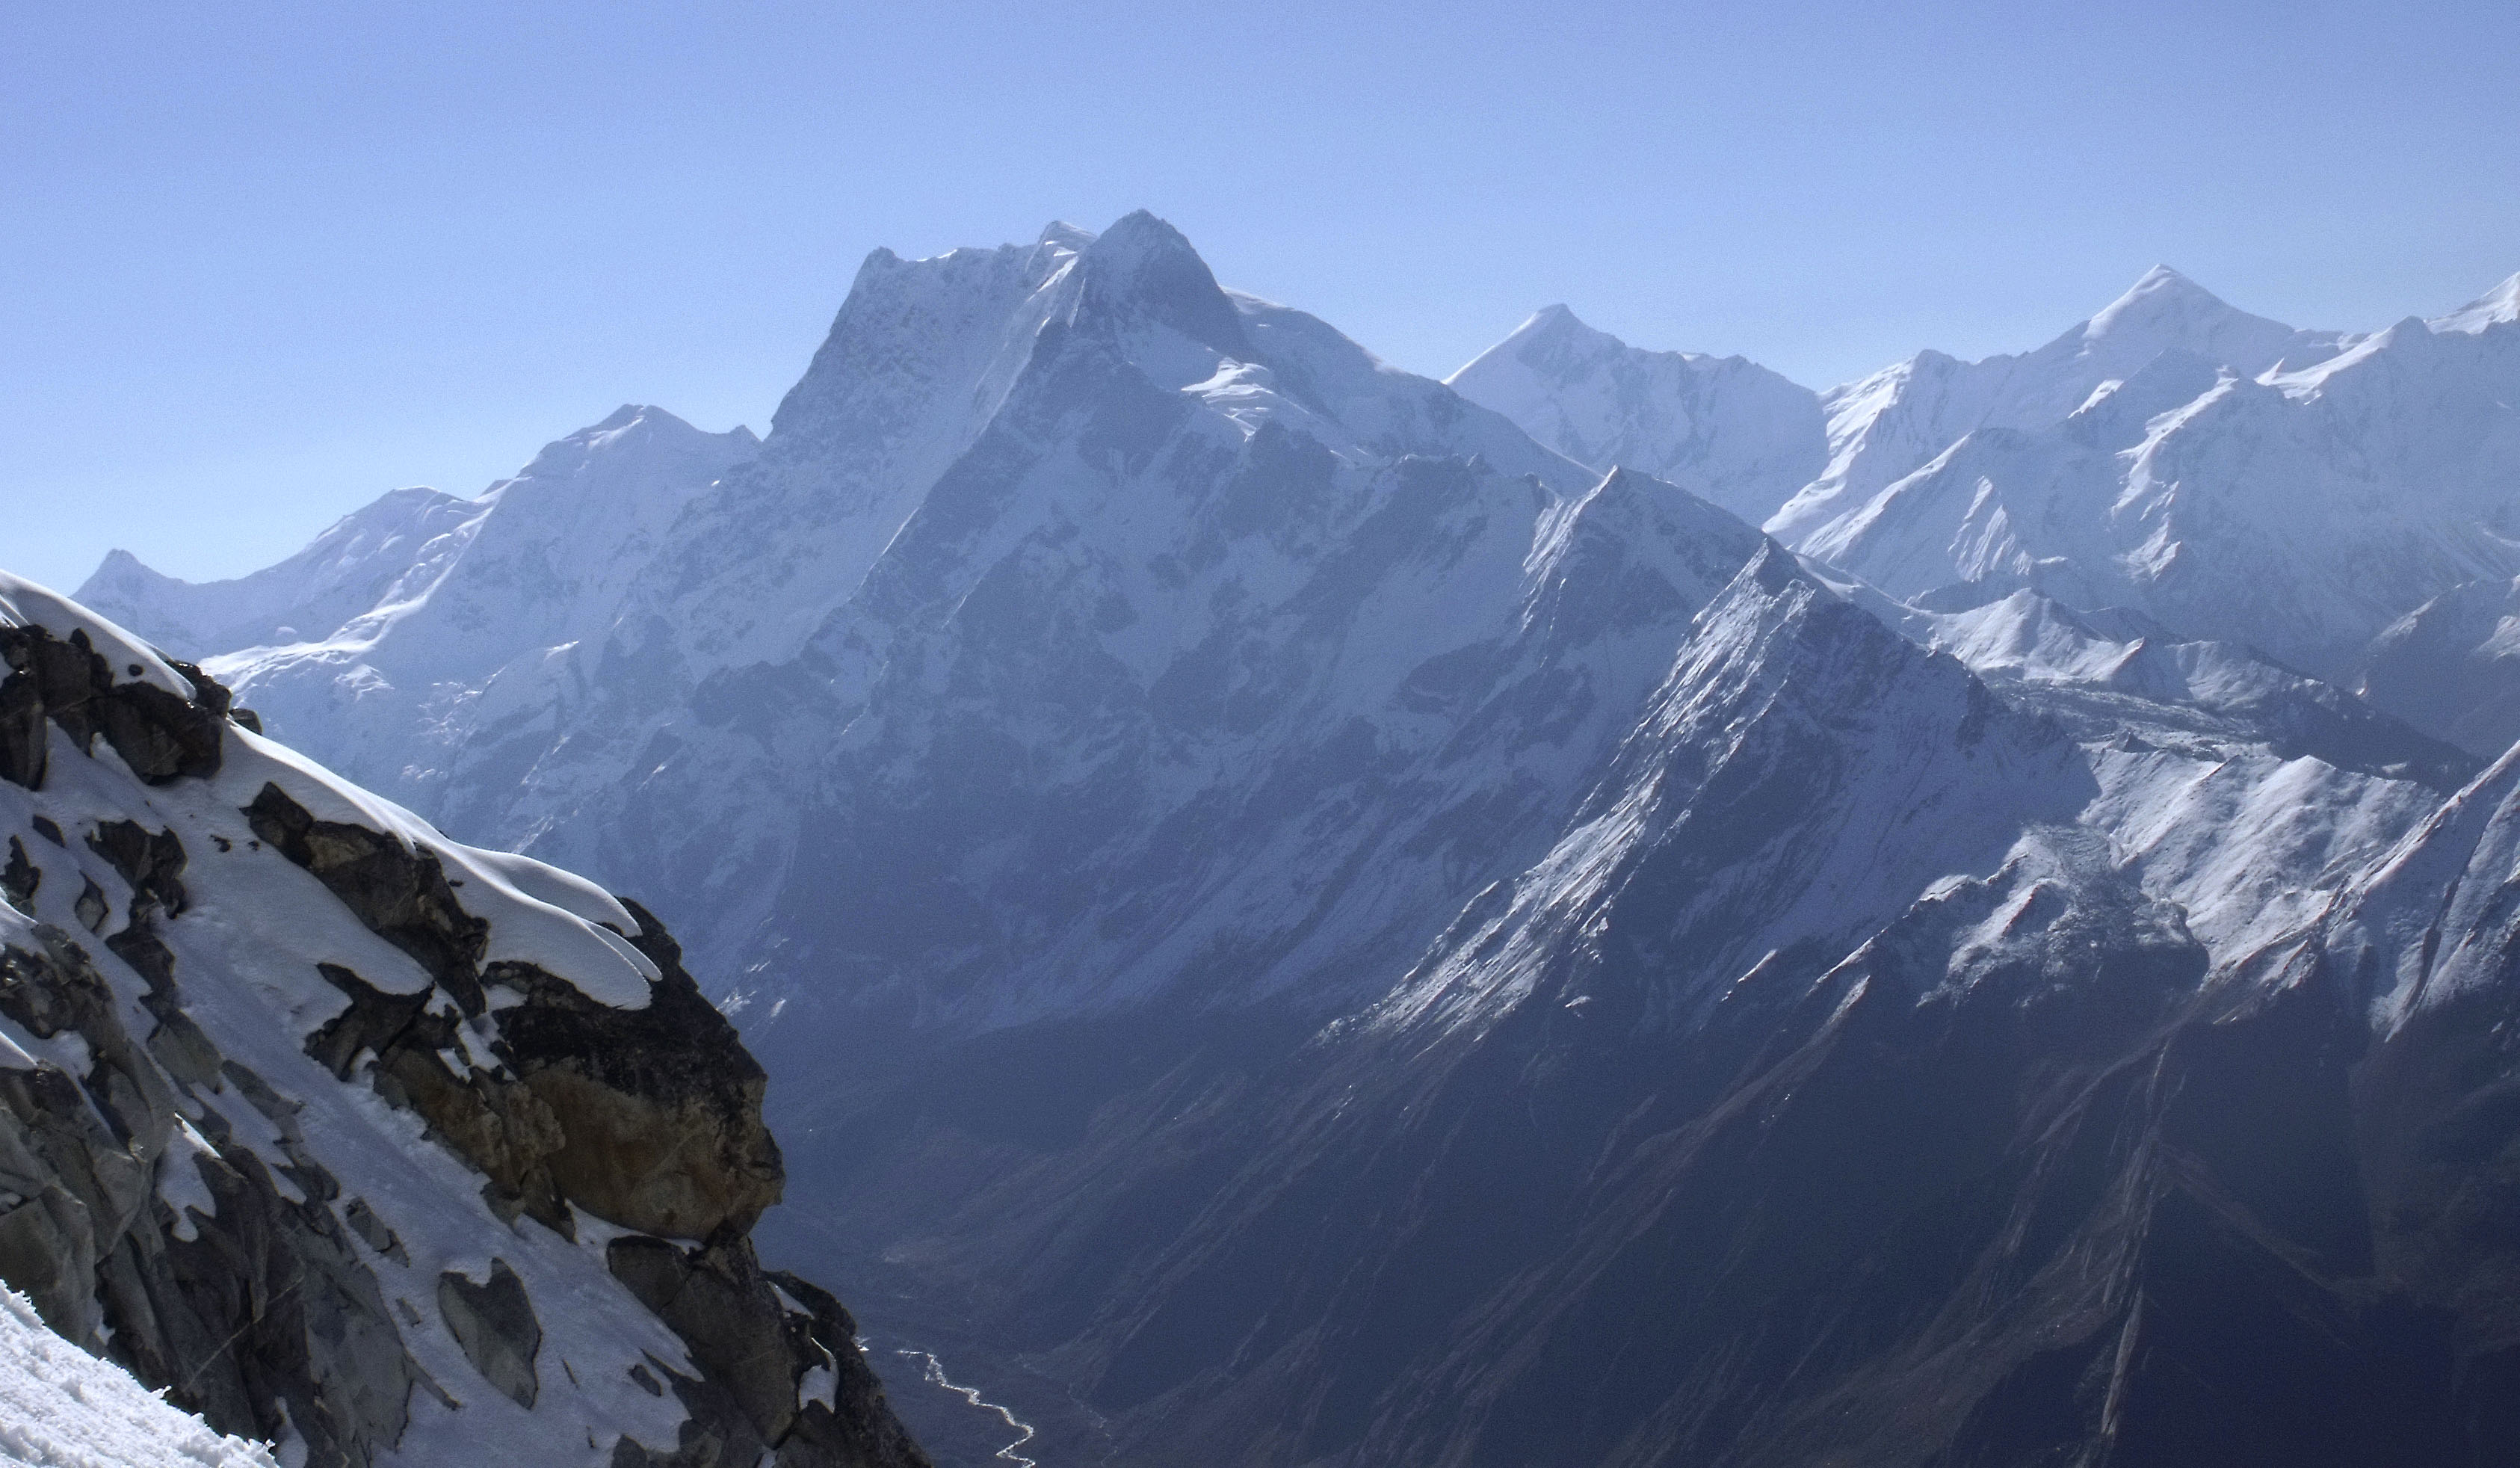 Unclimbed Peak 5,890m in Manindi Valley with the Swagorohini Group in the background. Jonathan Phillips